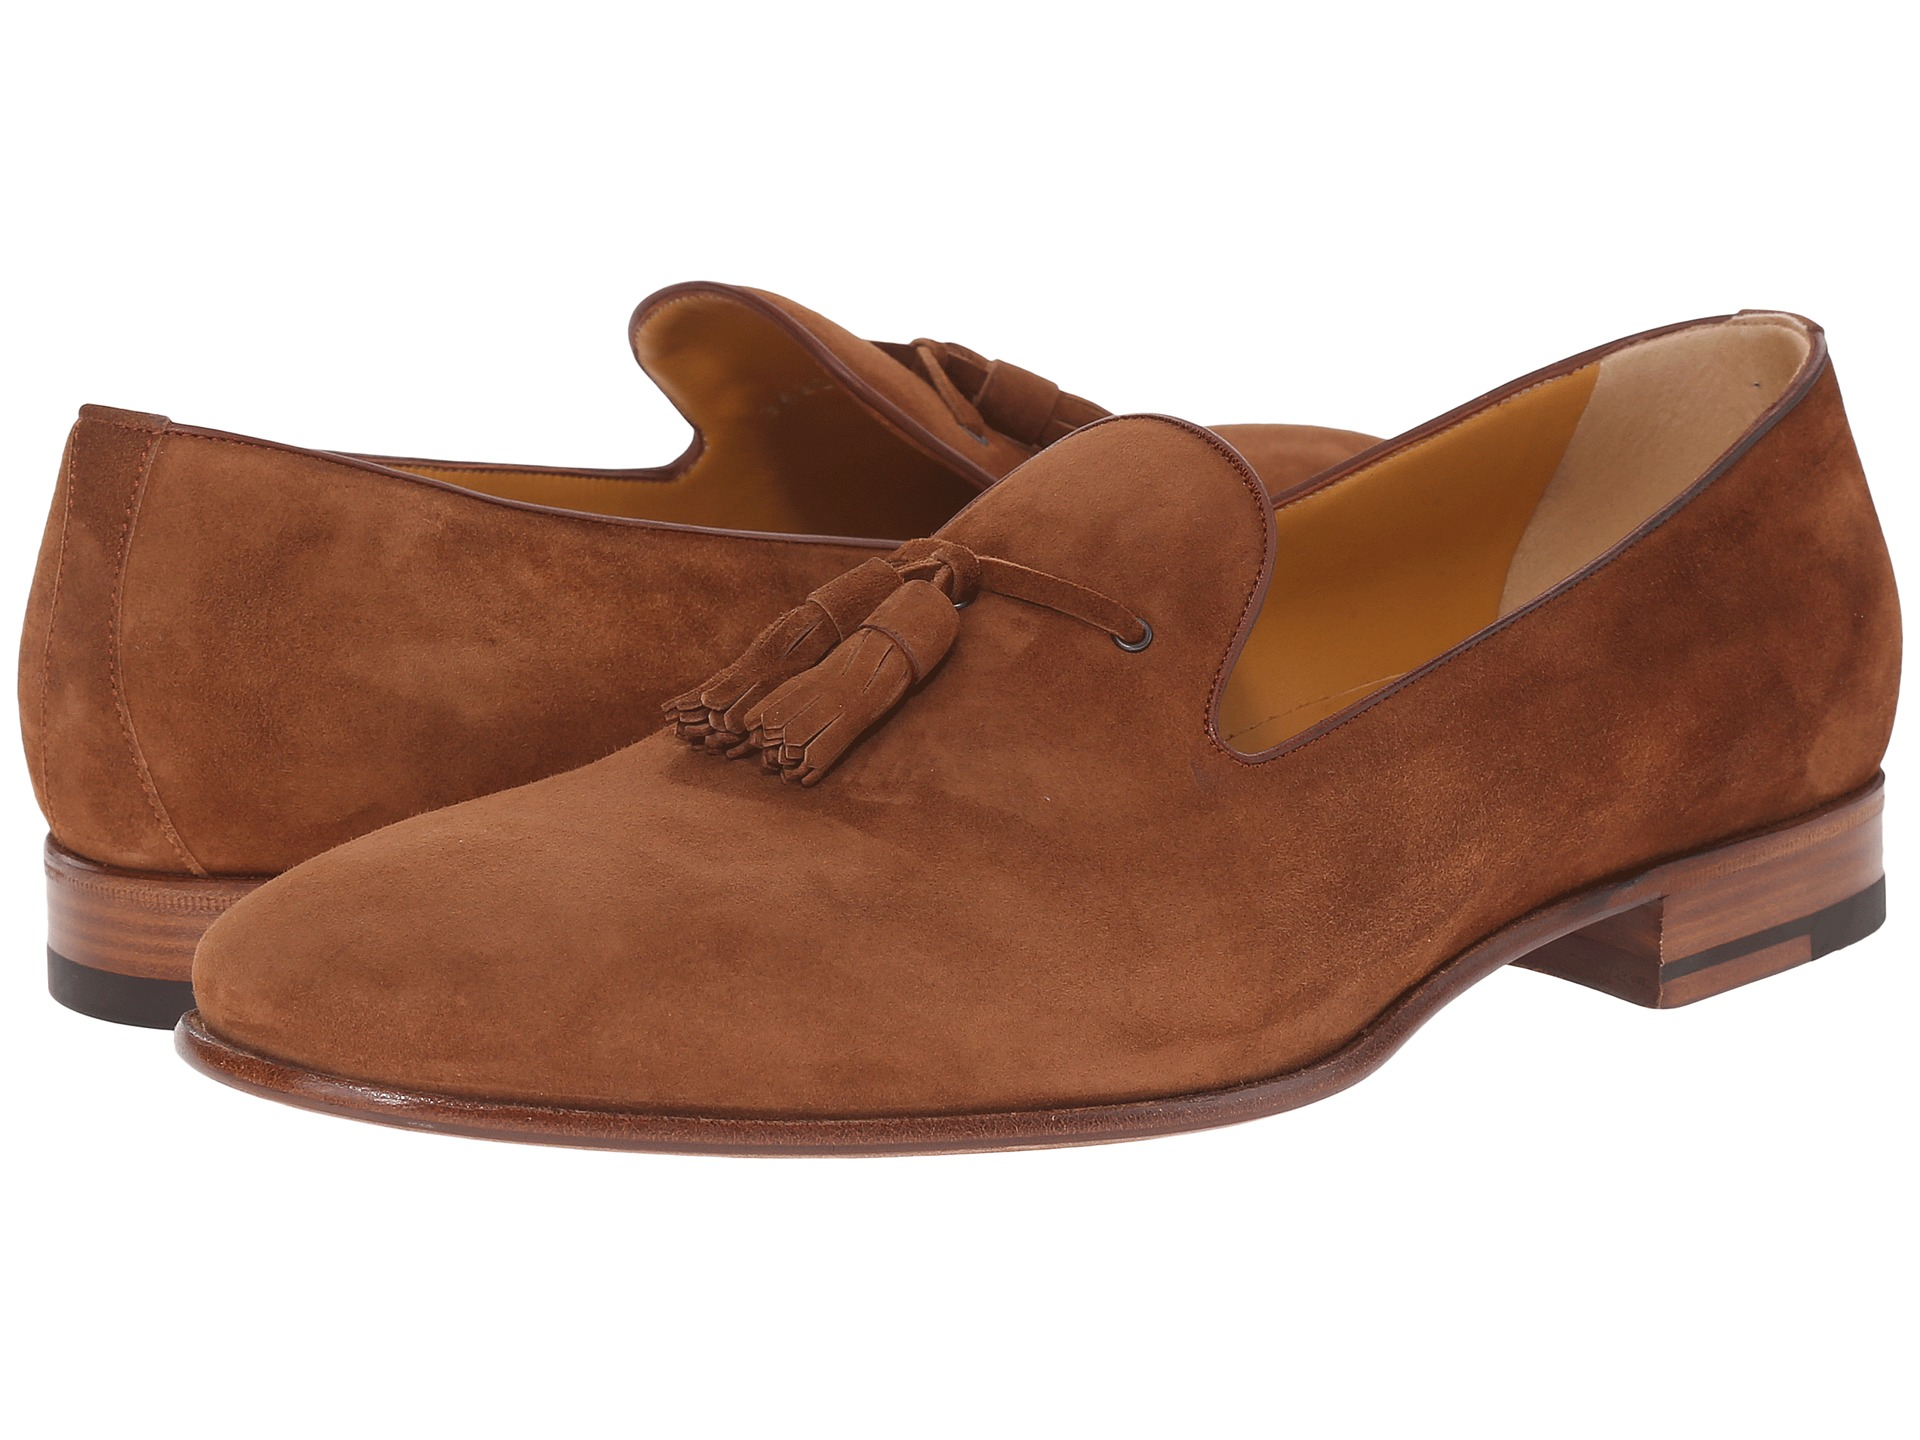 58ee884451a Lyst - A.Testoni Deluxe Suede Tassle Loafer in Brown for Men